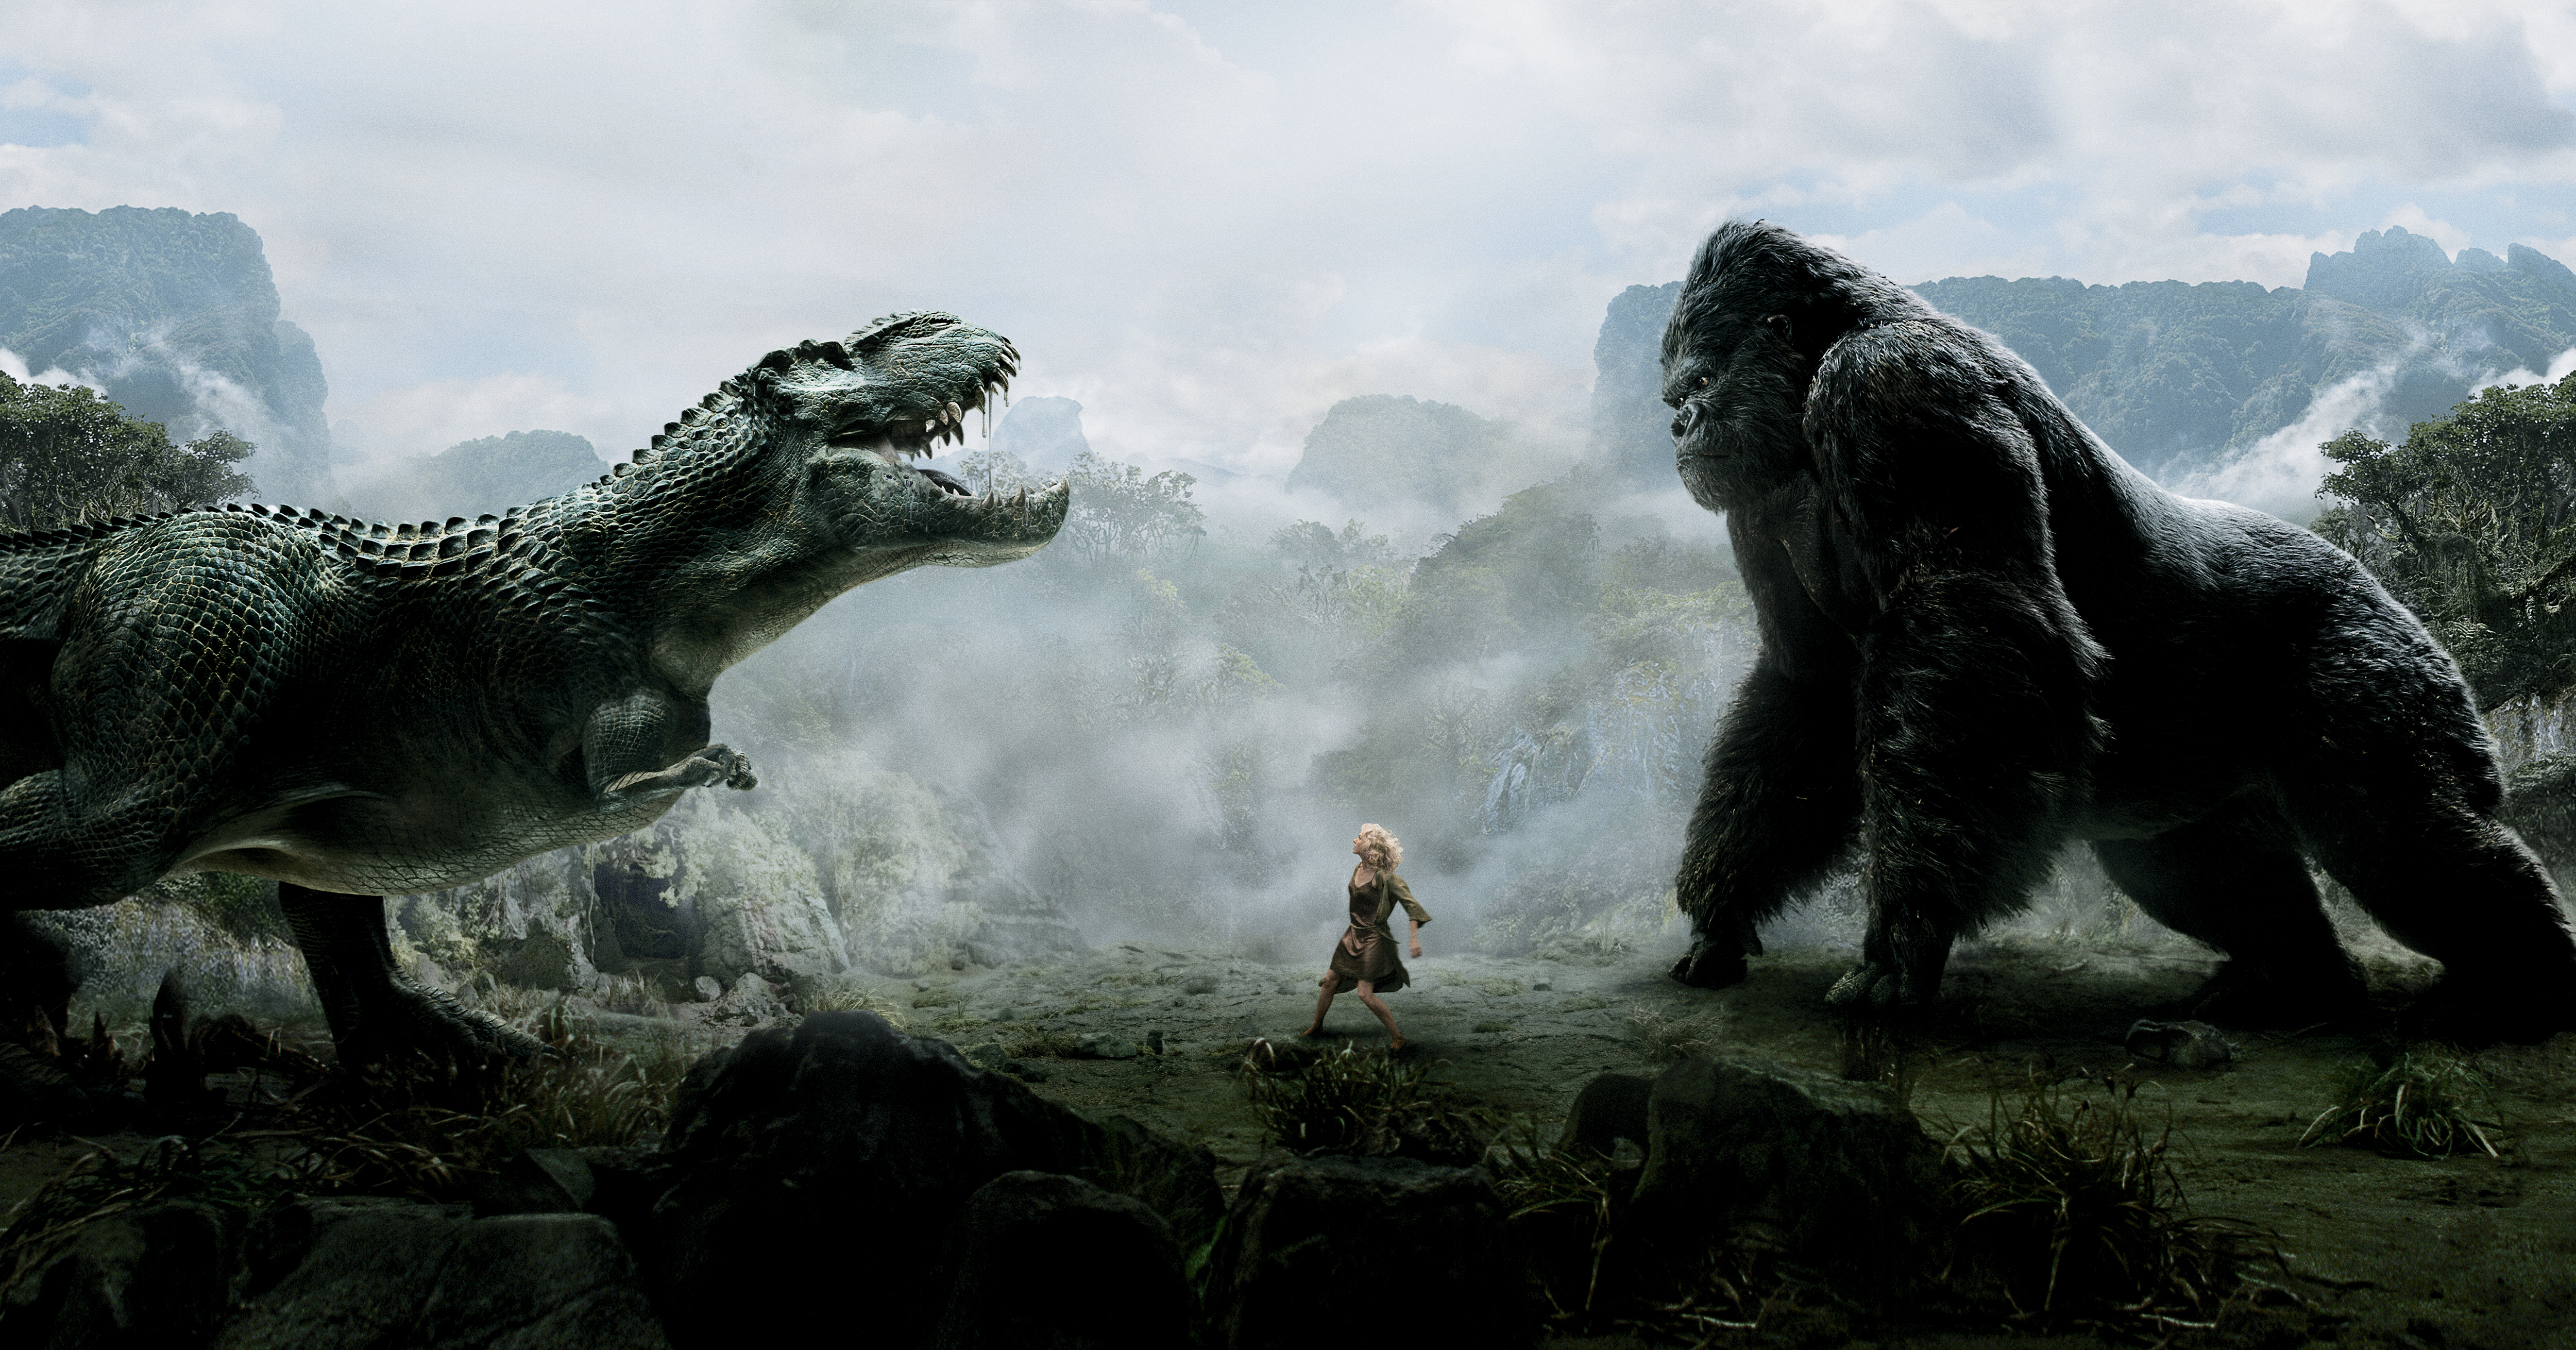 Cute Monster Wallpaper For Android 1920x1080 King Kong Movie Laptop Full Hd 1080p Hd 4k